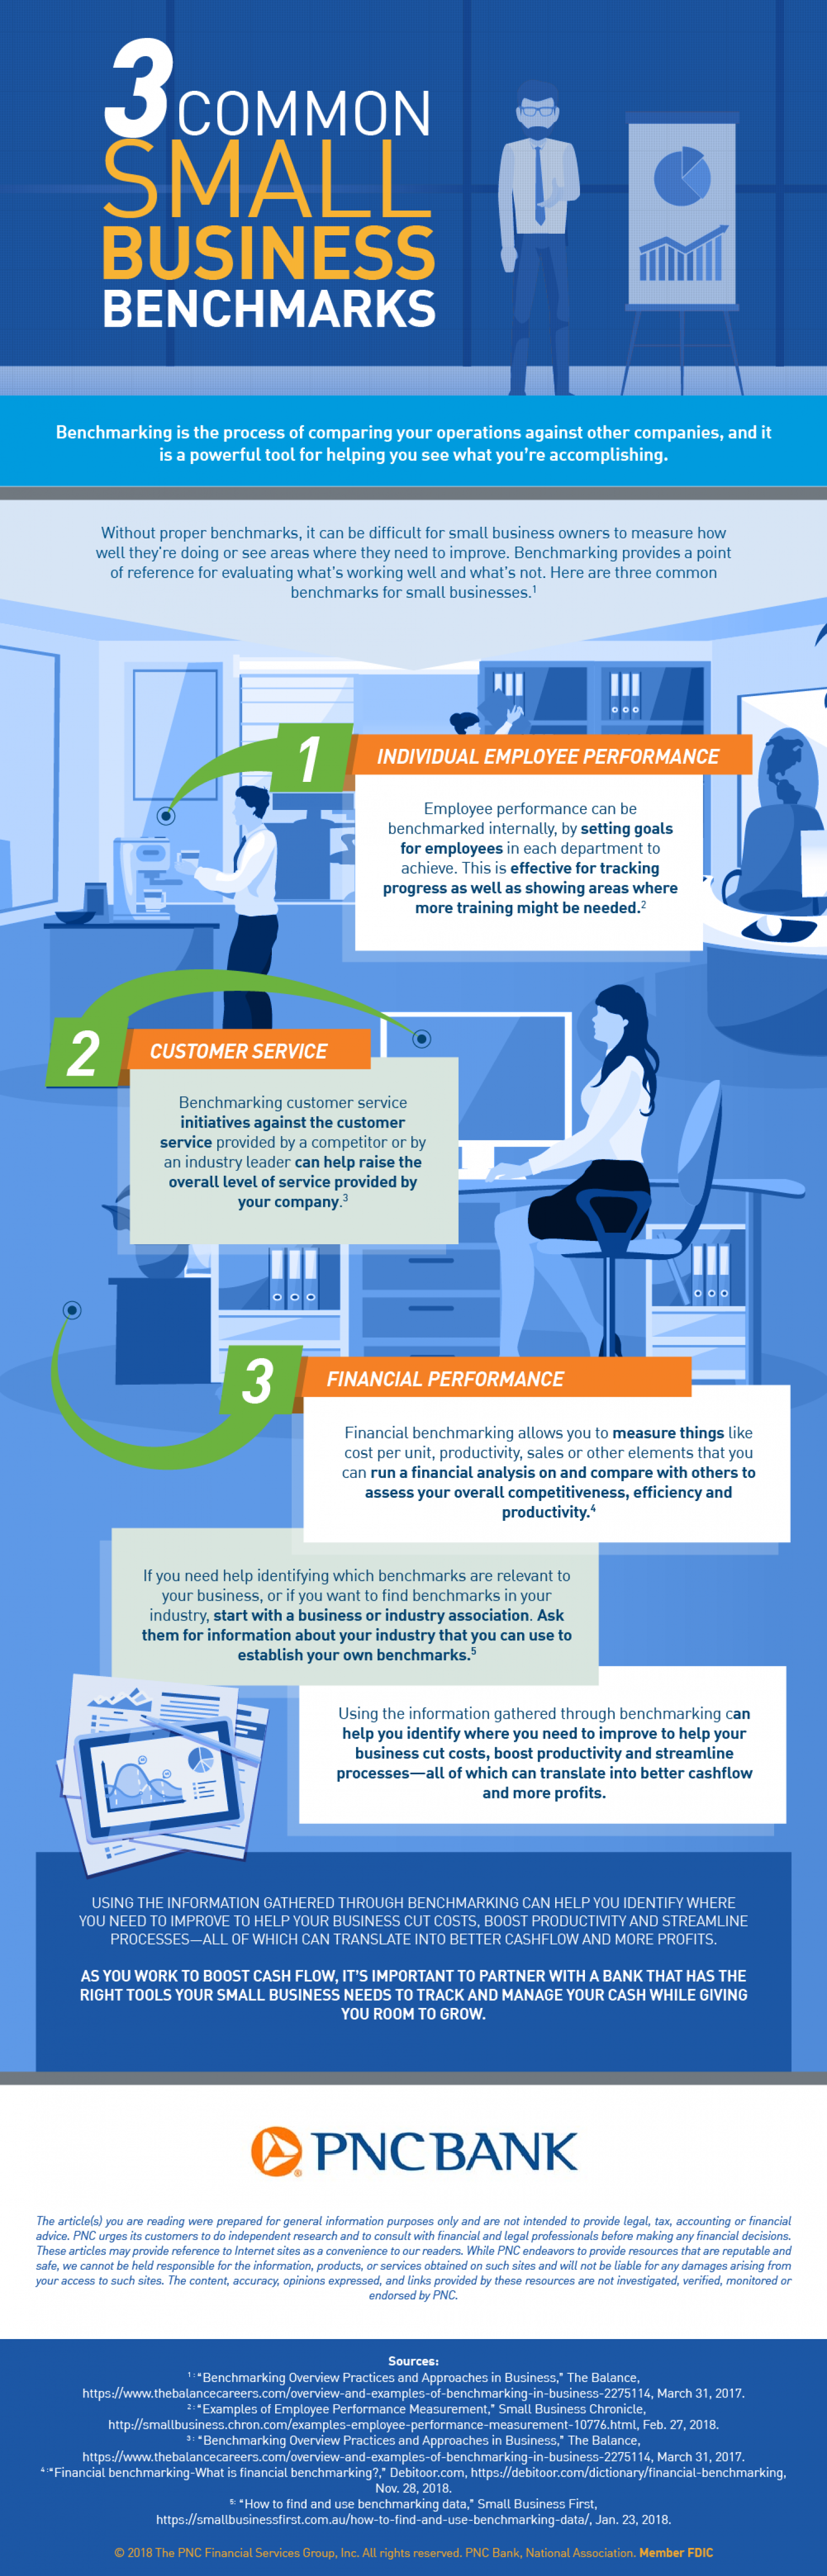 3 common small business benchmarks Infographic